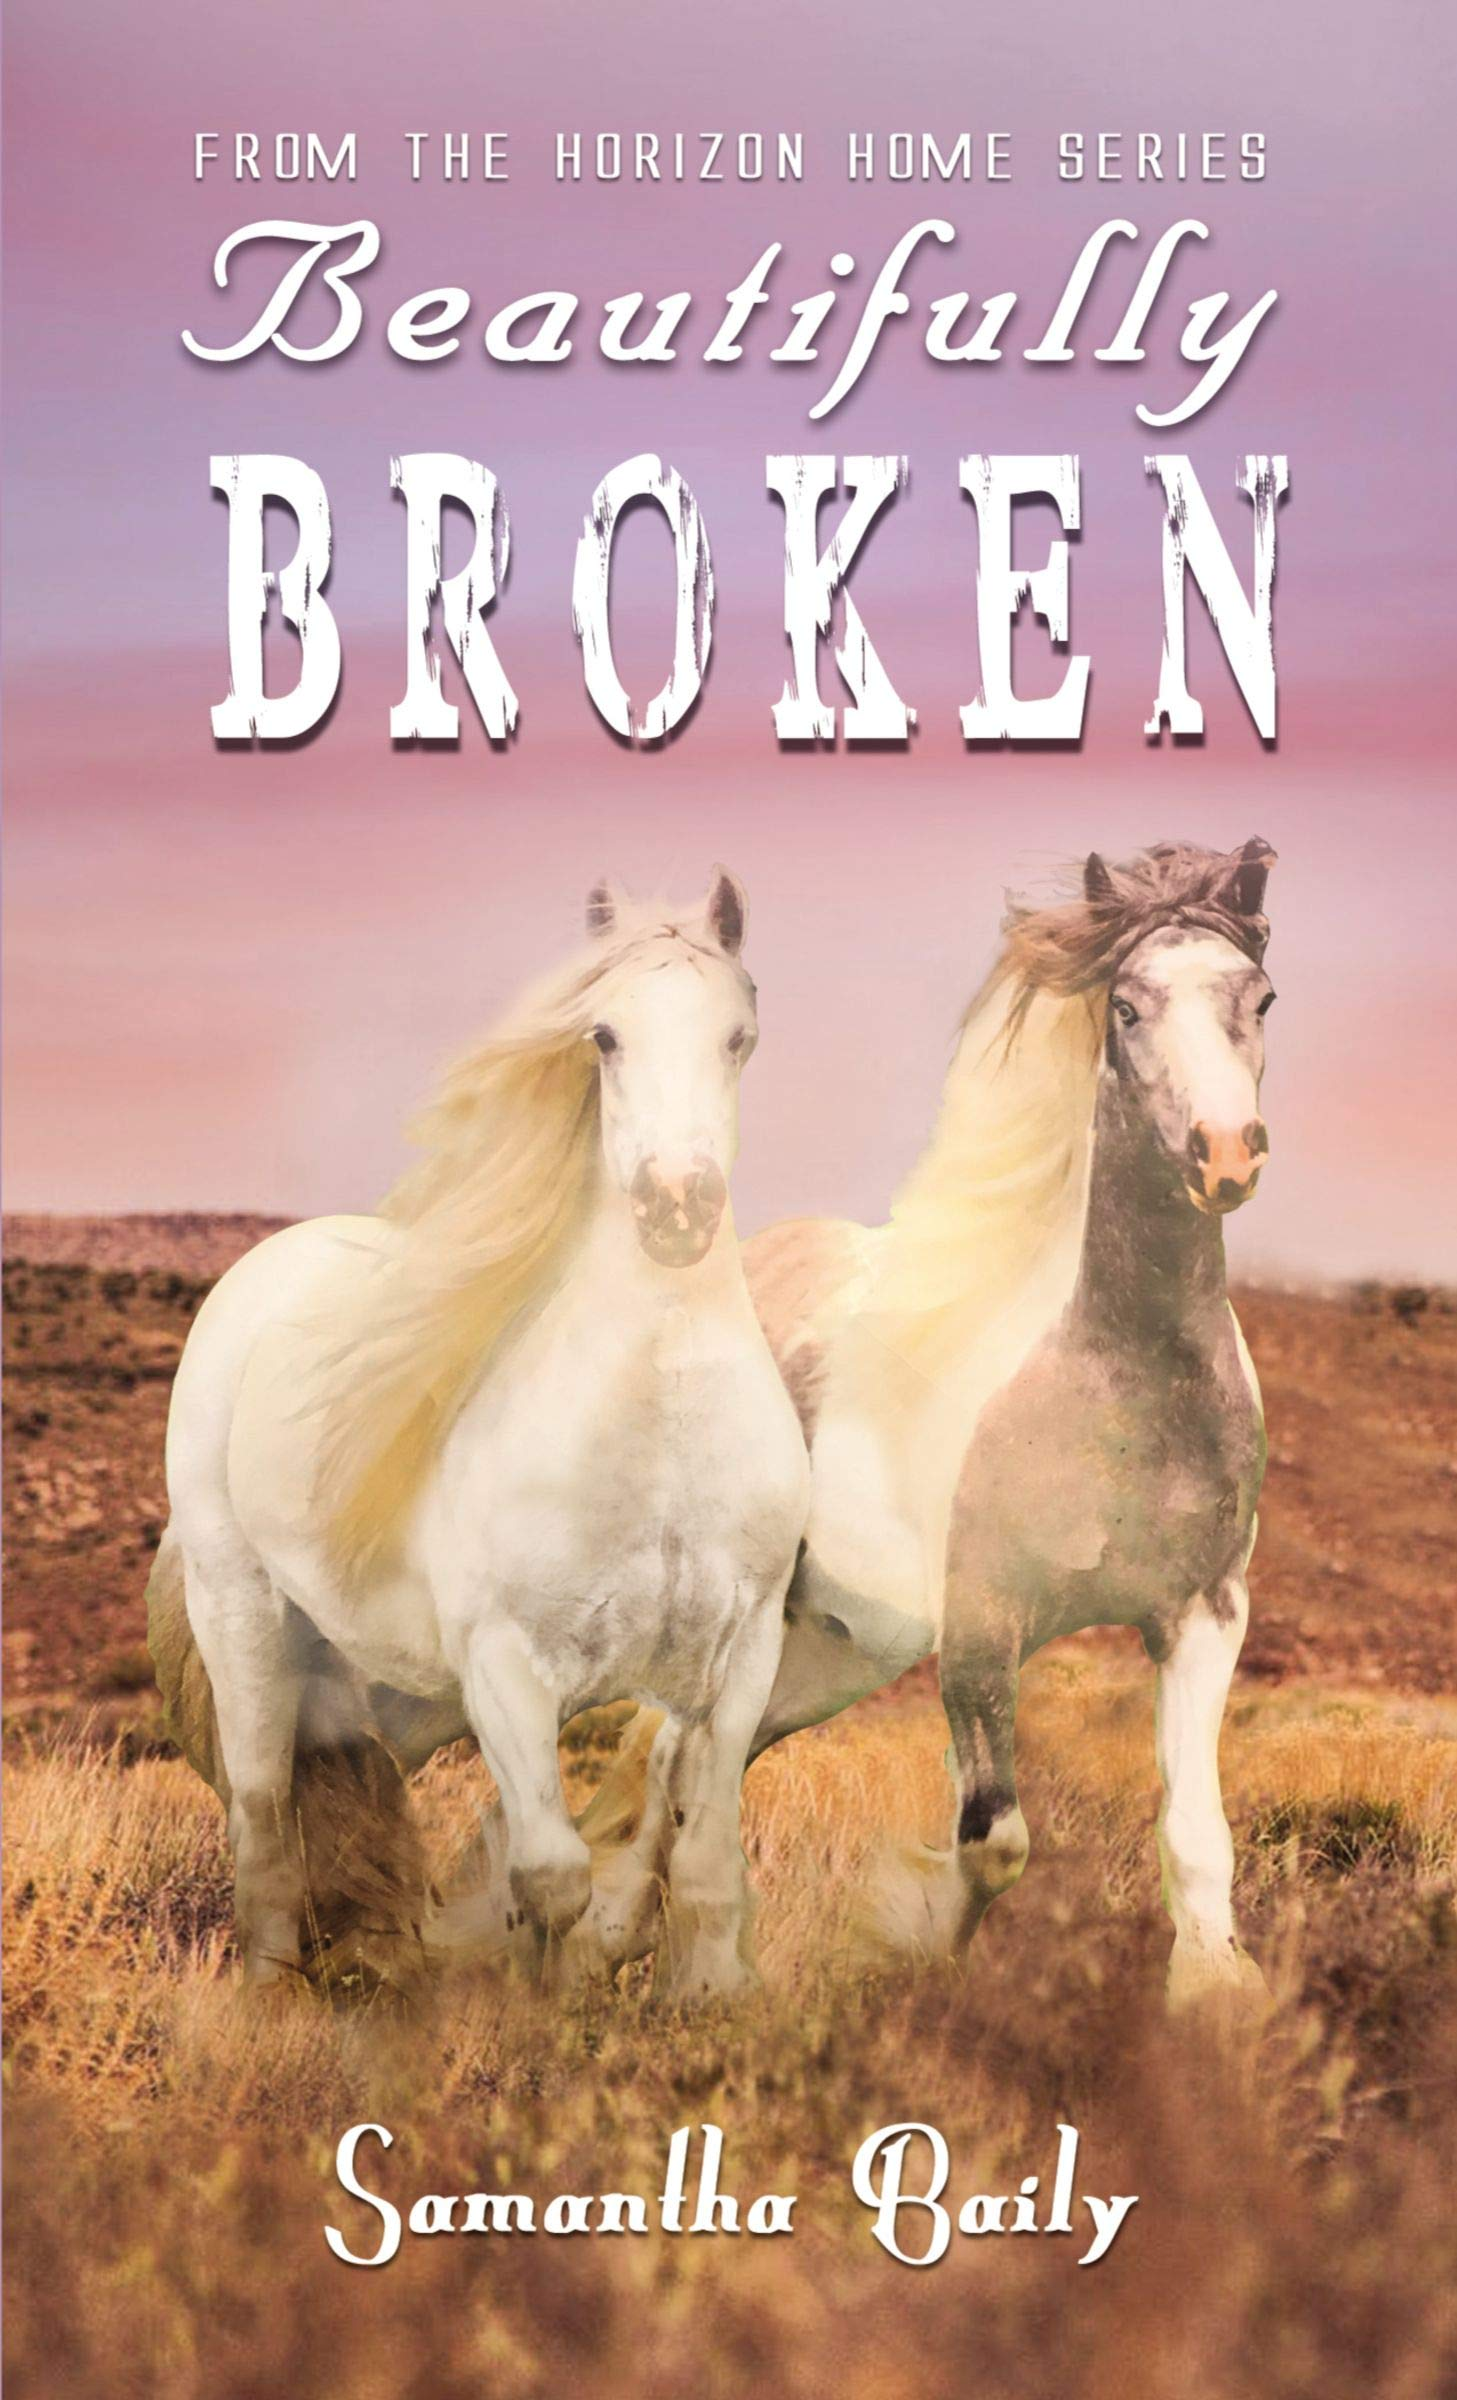 Beautifully Broken: From the Horizon Home Series